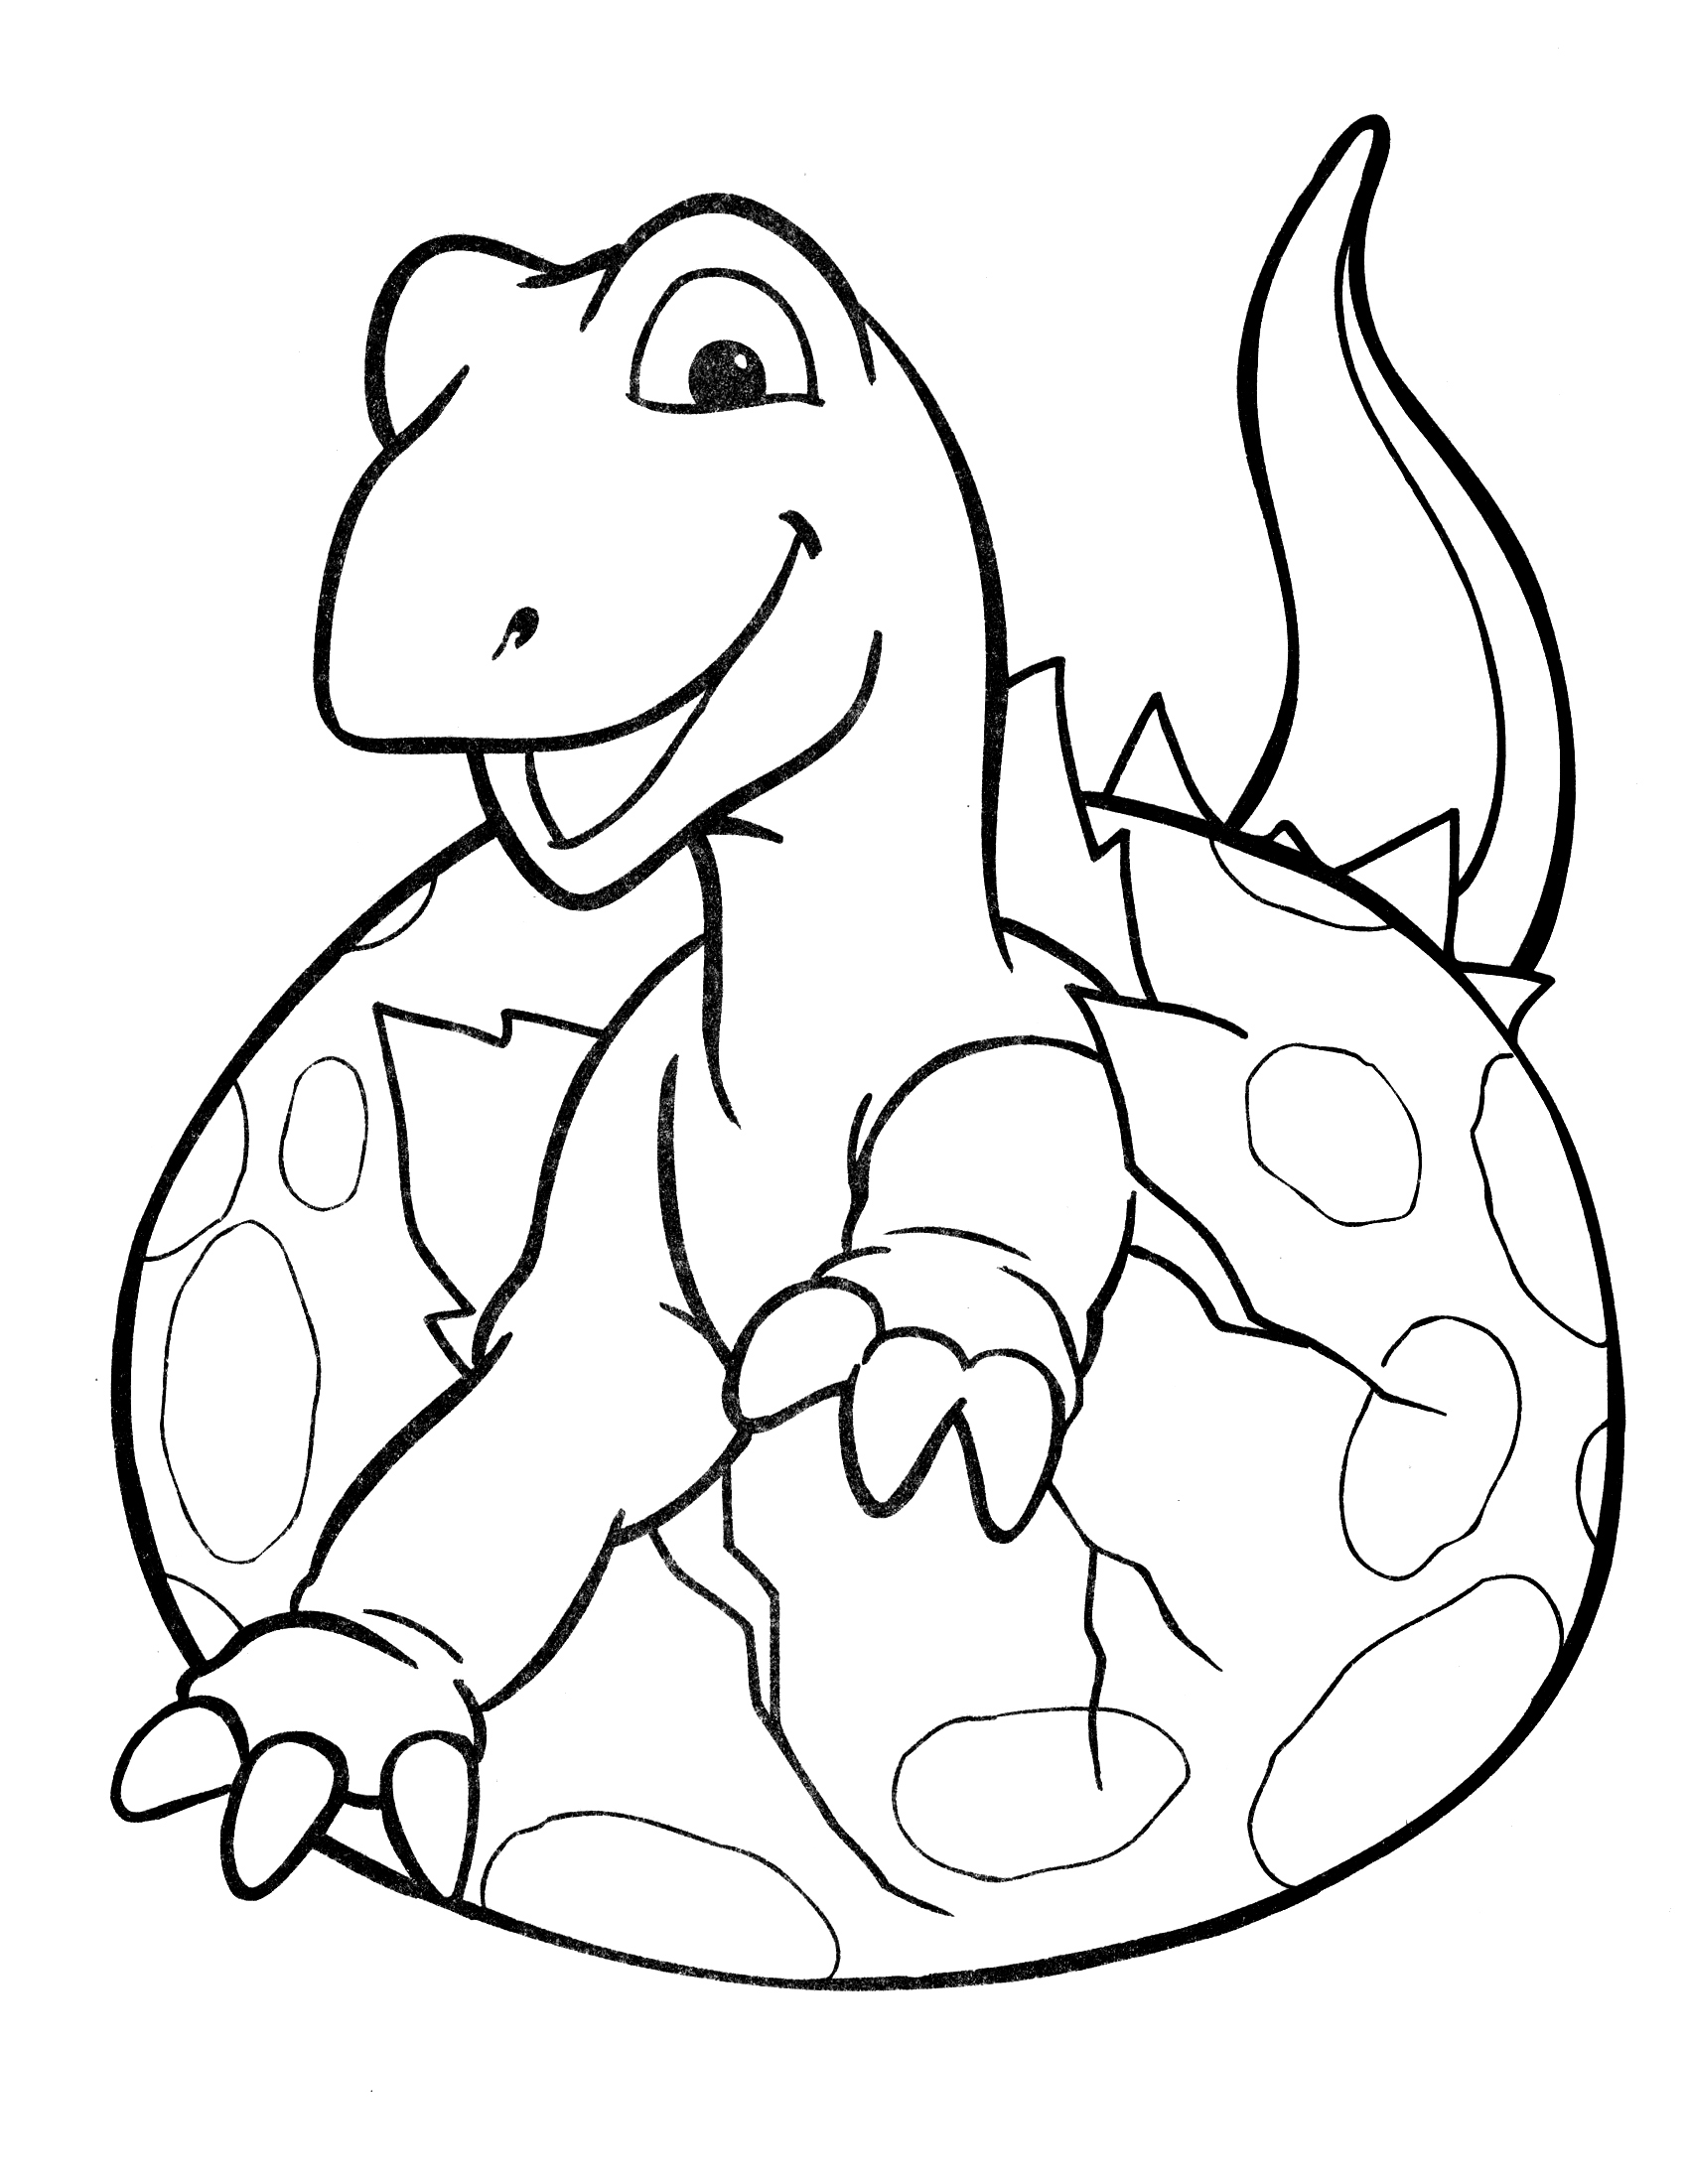 Make A Coloring Page From Photo Crayola